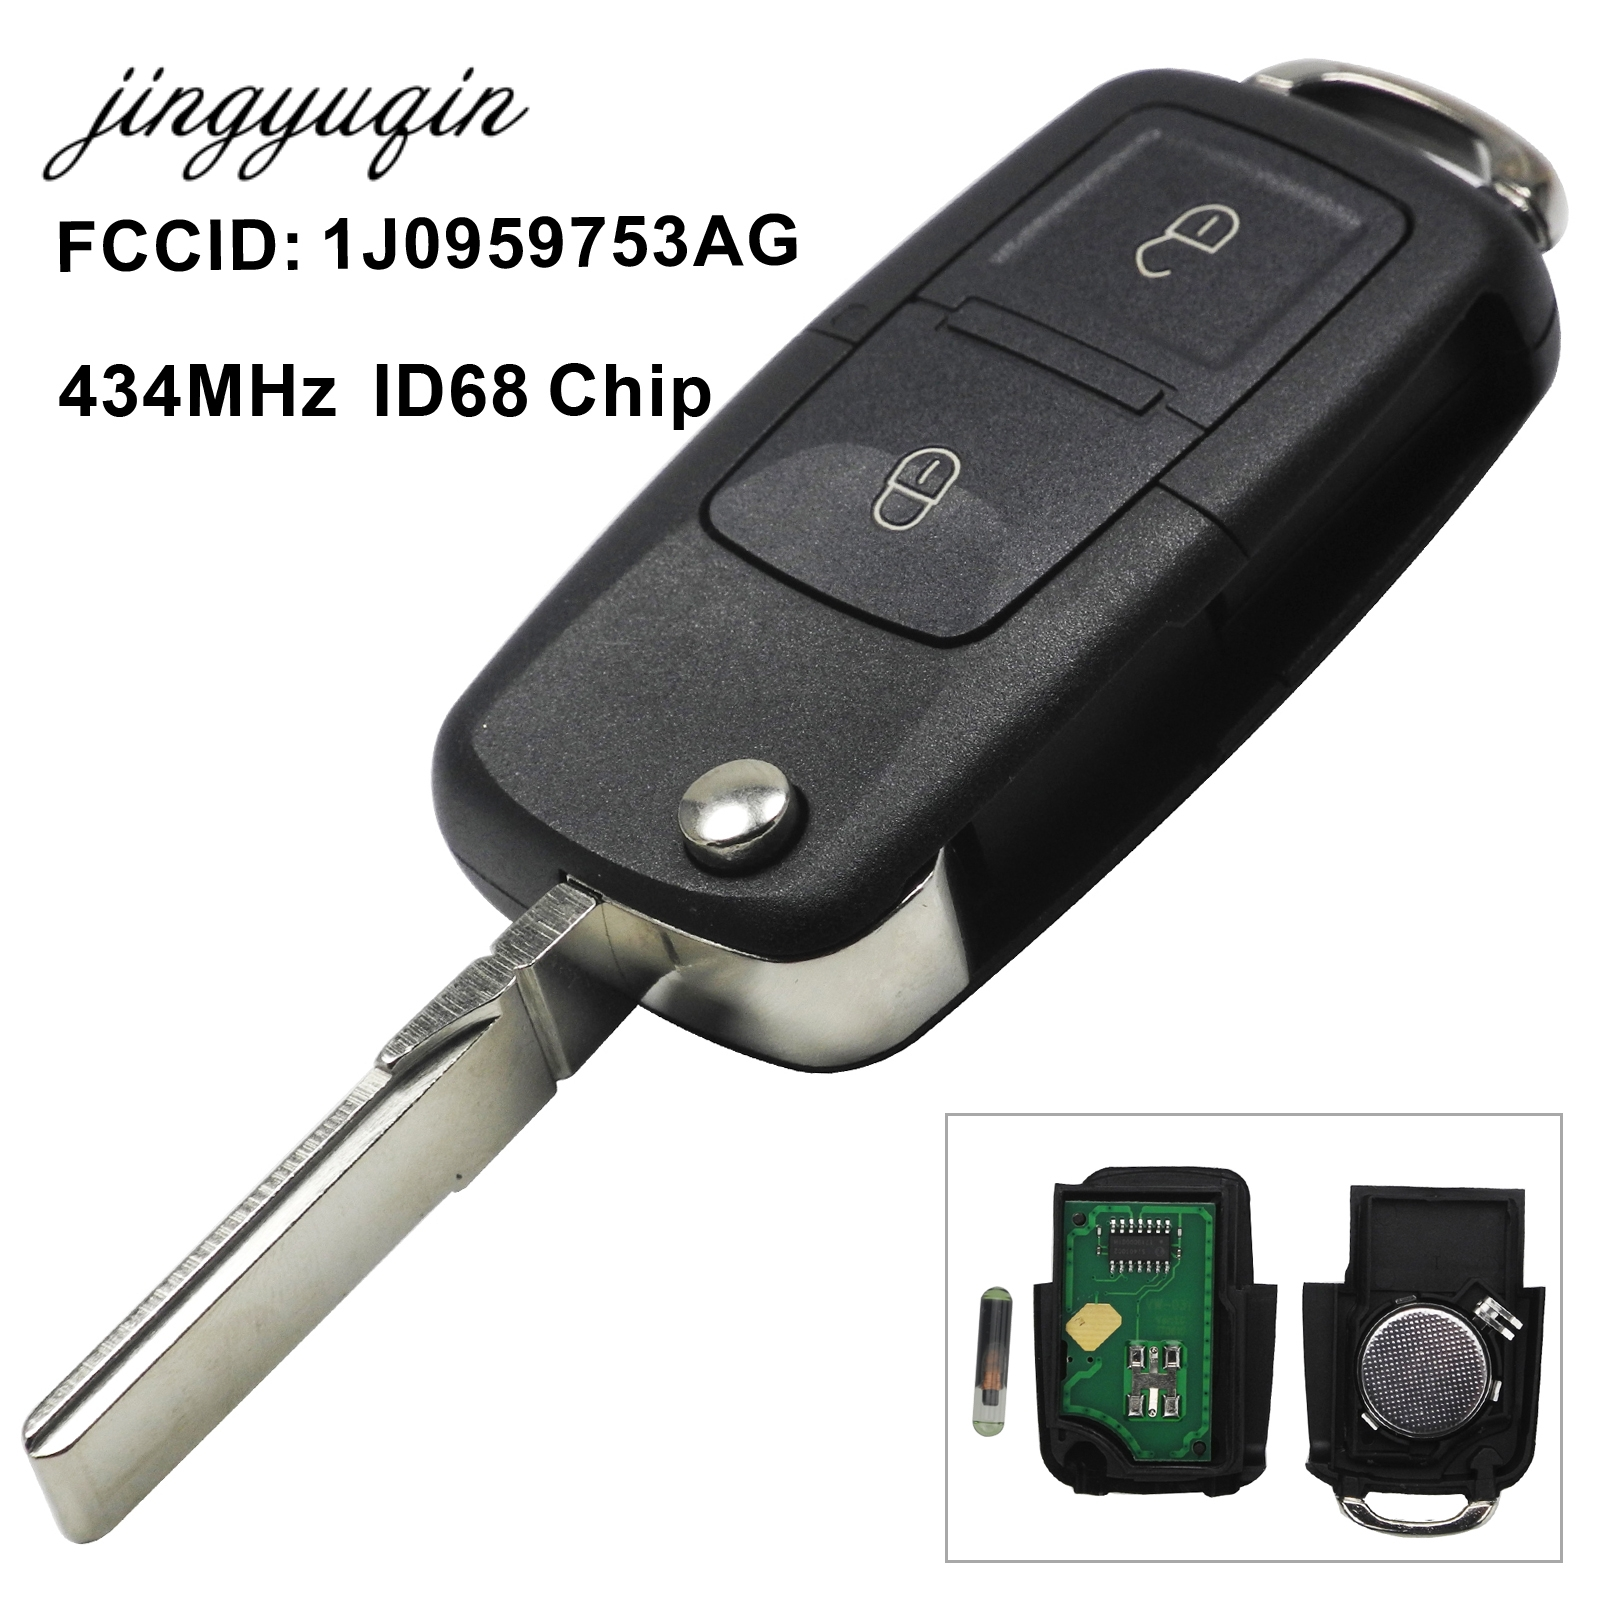 jingyuqin 2/3/4 Button Flip Remote Key Fob 434MHz ID48 Chip For VW Beetle Bora Golf Passat Polo Transporter T5 1J0 959 753 AG